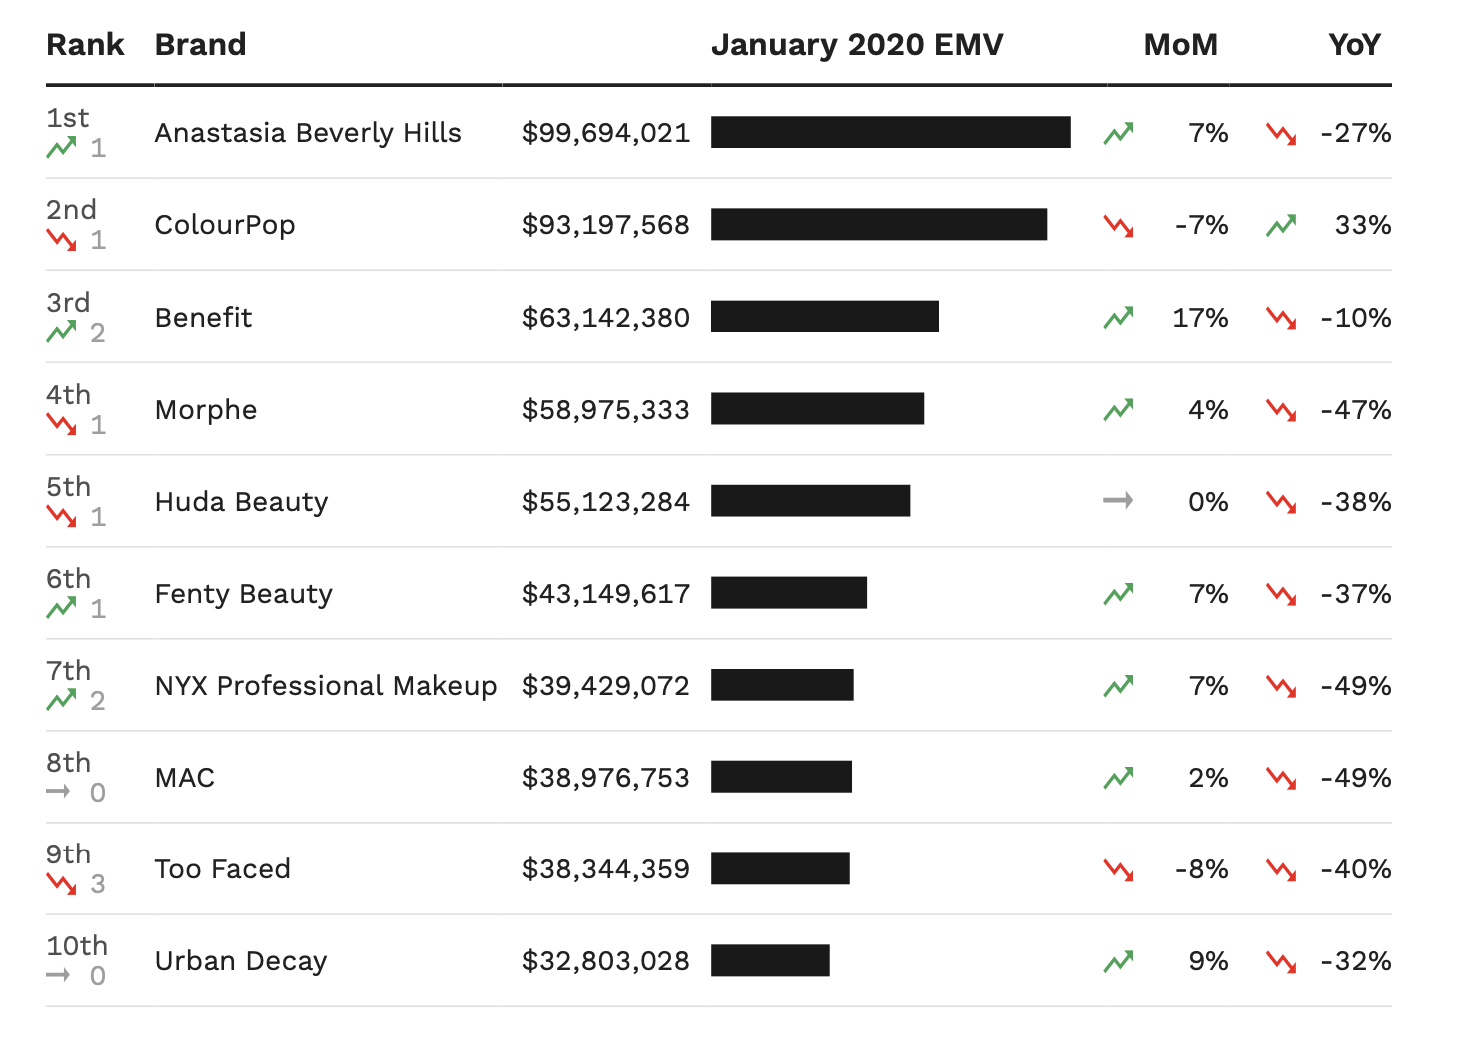 A chart showing the top 10 makeup brands in the U.S. by January EMV performance.